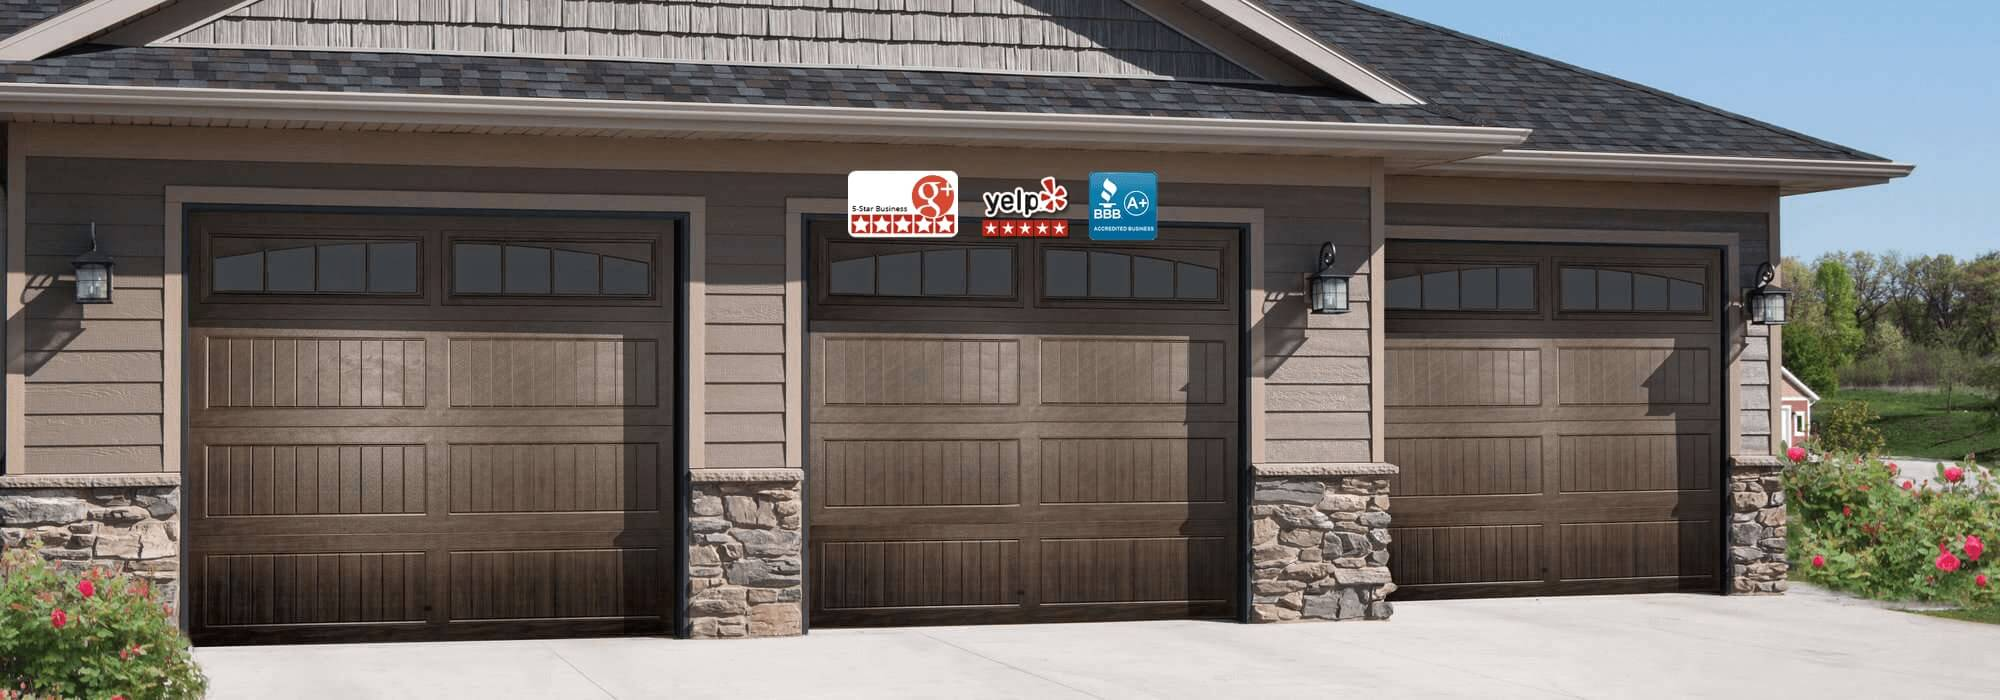 Superbe Garage Door Repair Aurora CO | A1 Garage Door Service   CALL 24/7